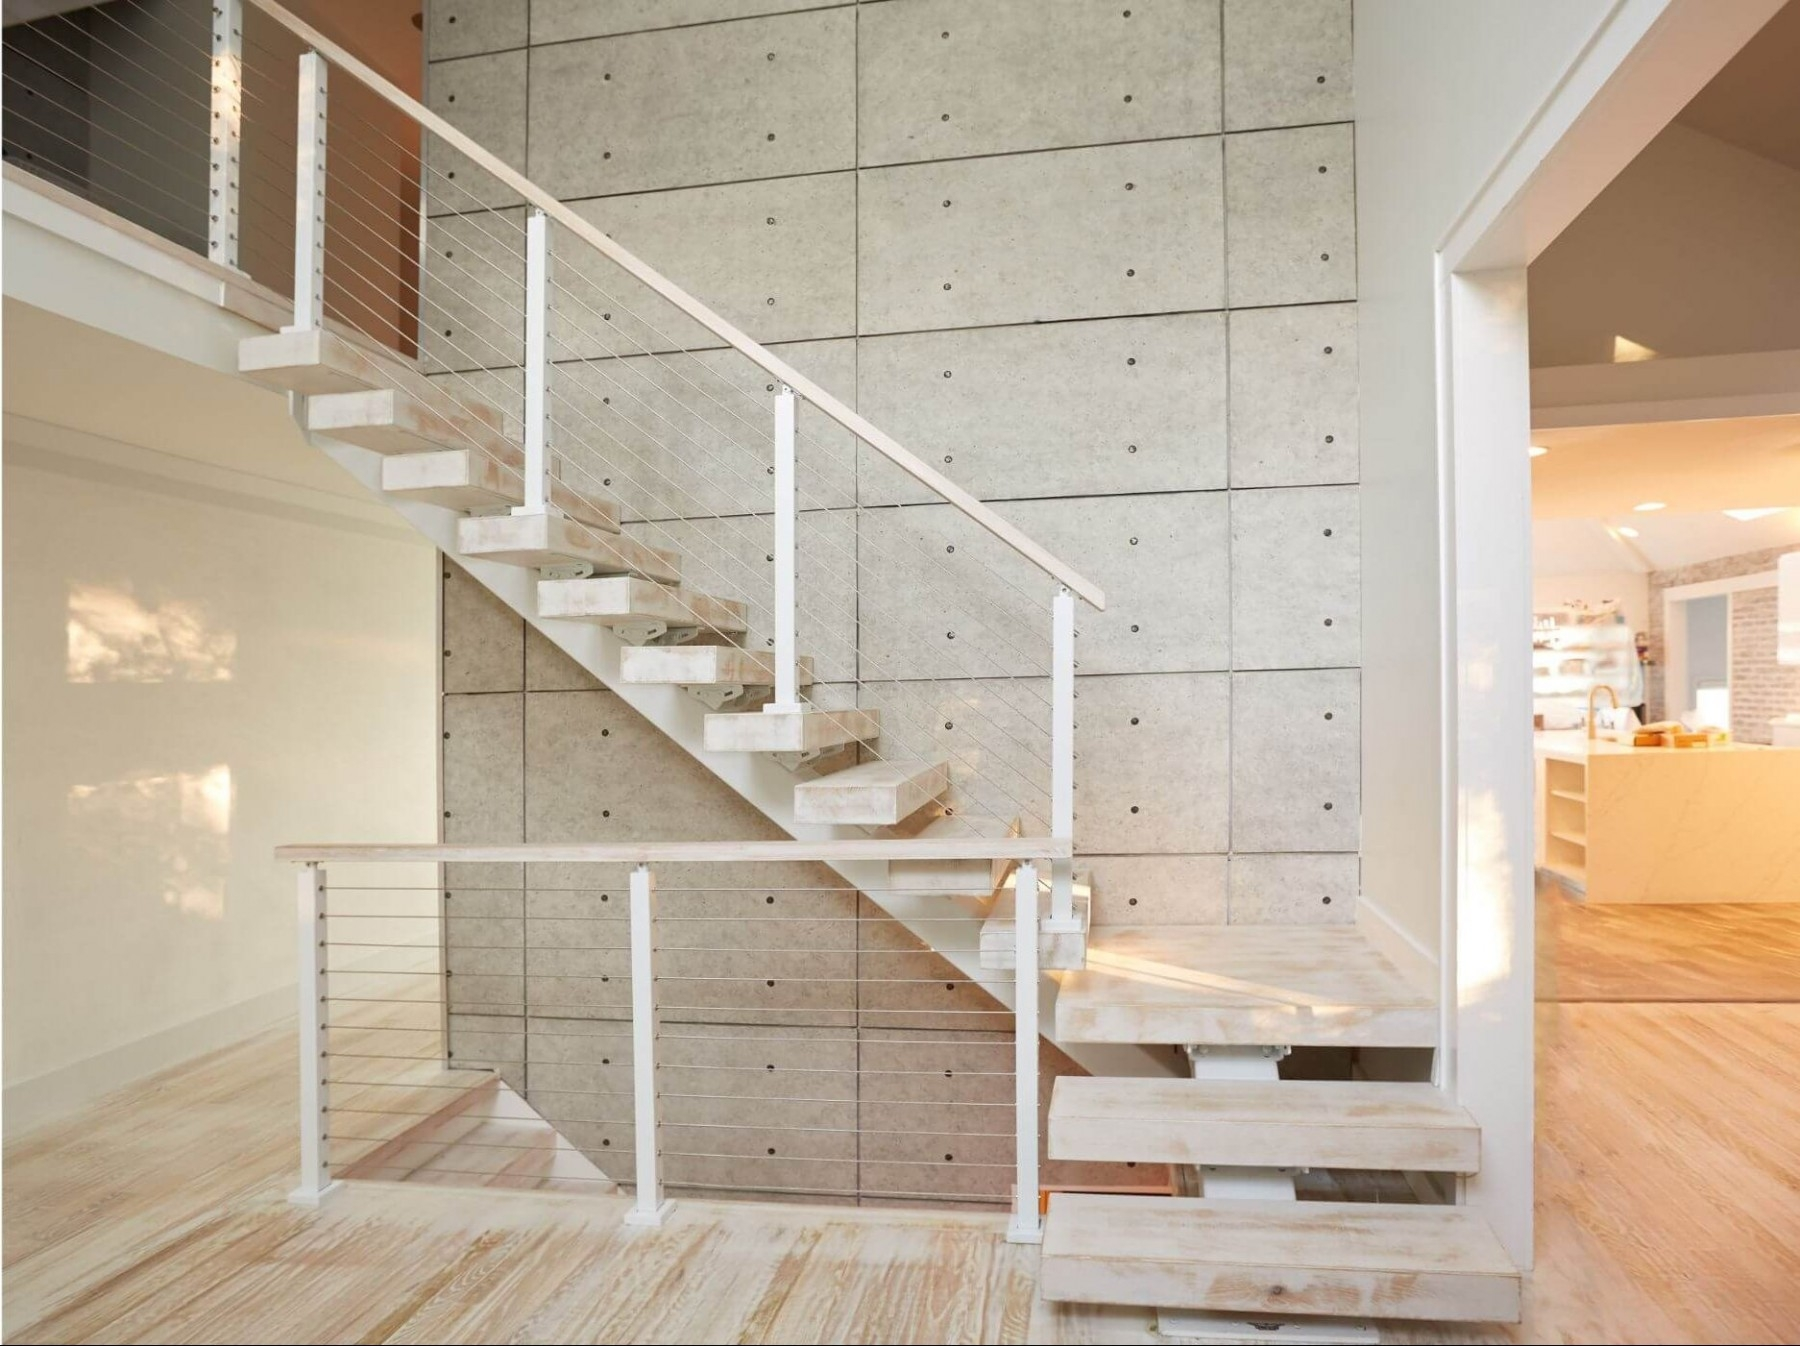 Spiral Staircase Alternatives For Your Nyc Duplex Renovation   Changing Spiral Stairs To Normal Stairs   House   Space Saving   Staircase Design   Handrail   Building Regulations